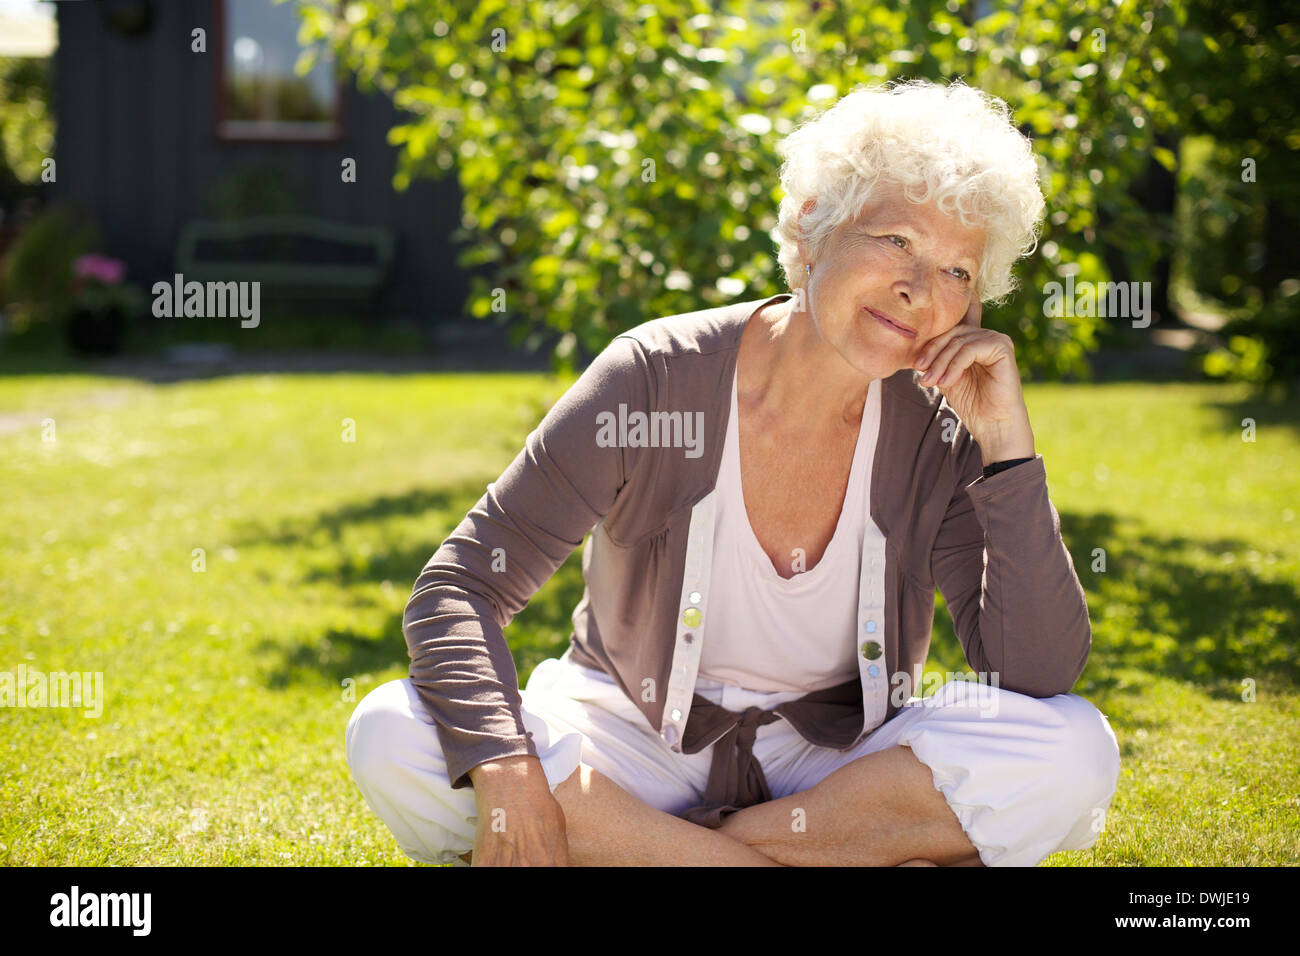 Senior woman sitting outdoors on grass looking away and thinking. Elder woman relaxing in backyard garden day dreaming - Stock Image